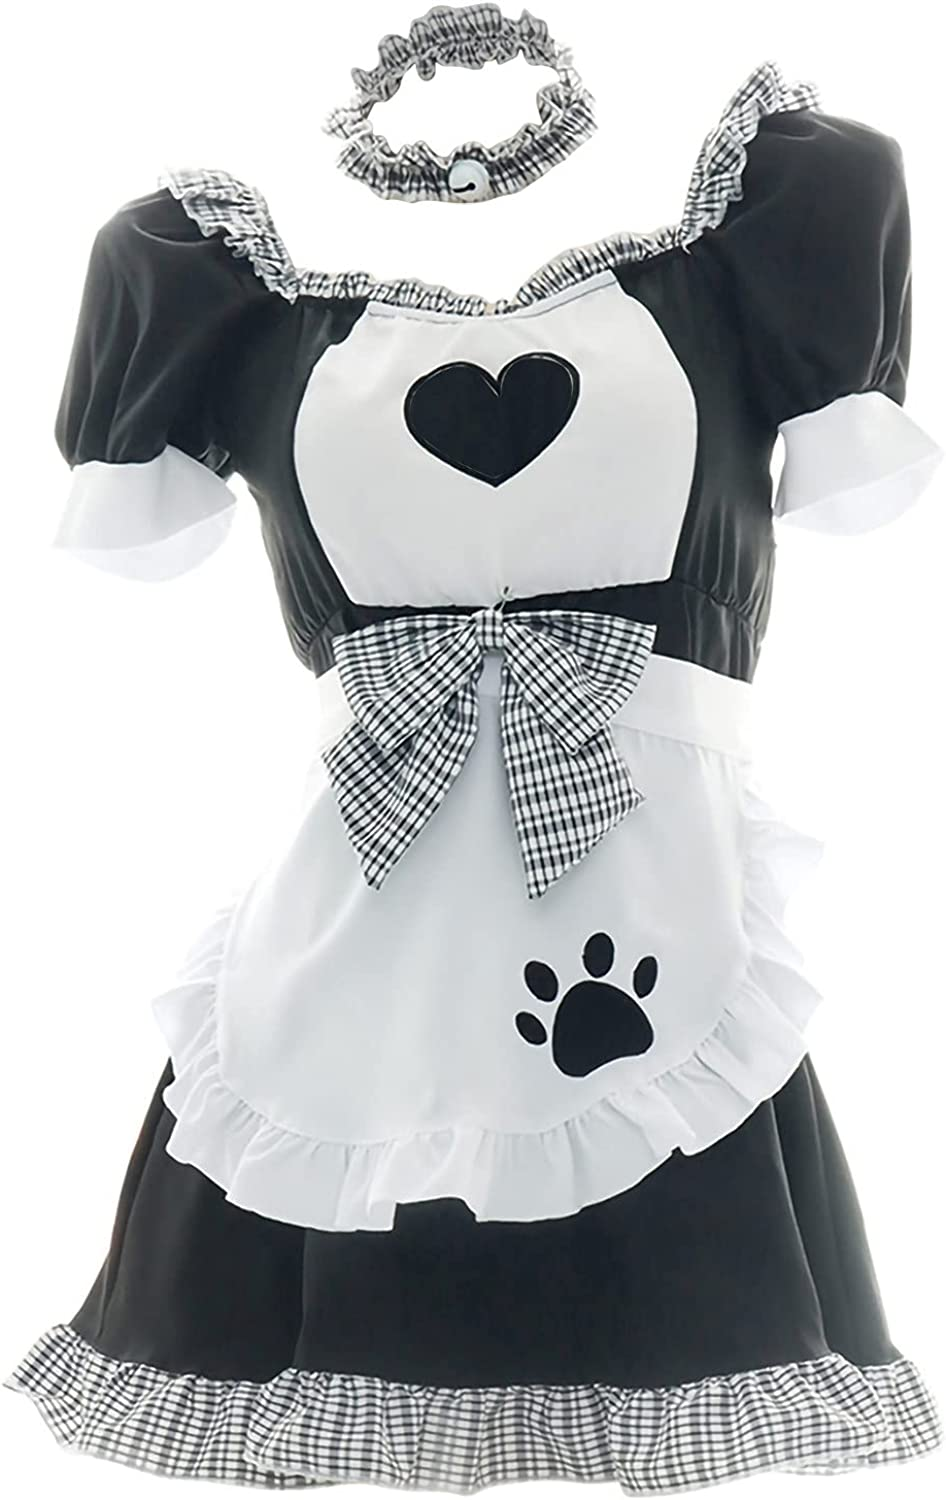 Women's Cute Overseas parallel import regular item Maid Outfit Set Sexy Lolita Lingerie 67% OFF of fixed price Fa Pajamas